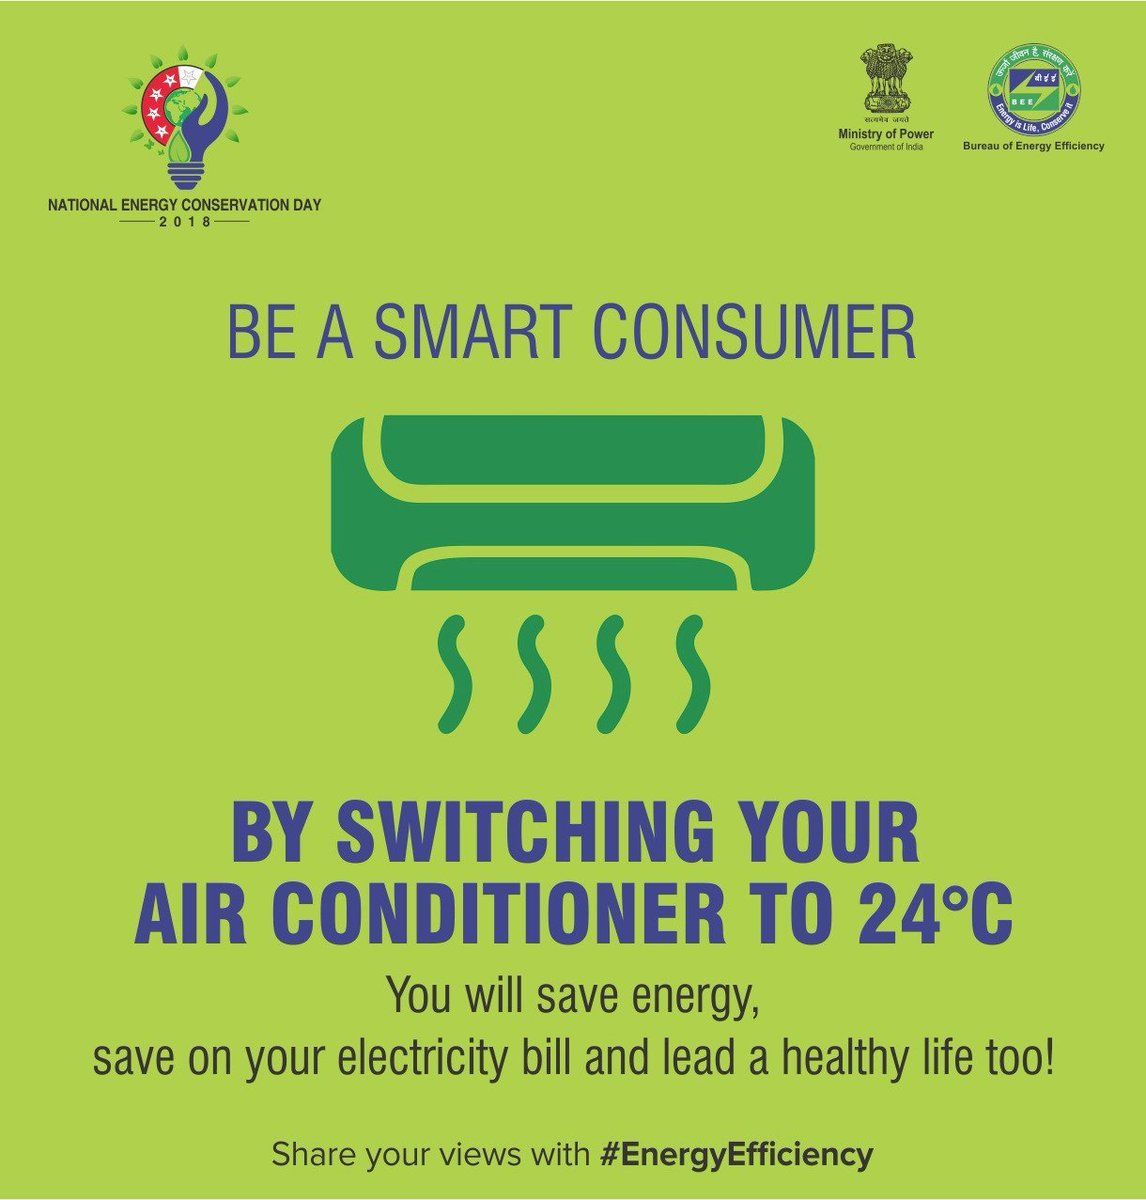 Conserve Electricity Bureau Of Energy Efficiency On Twitter